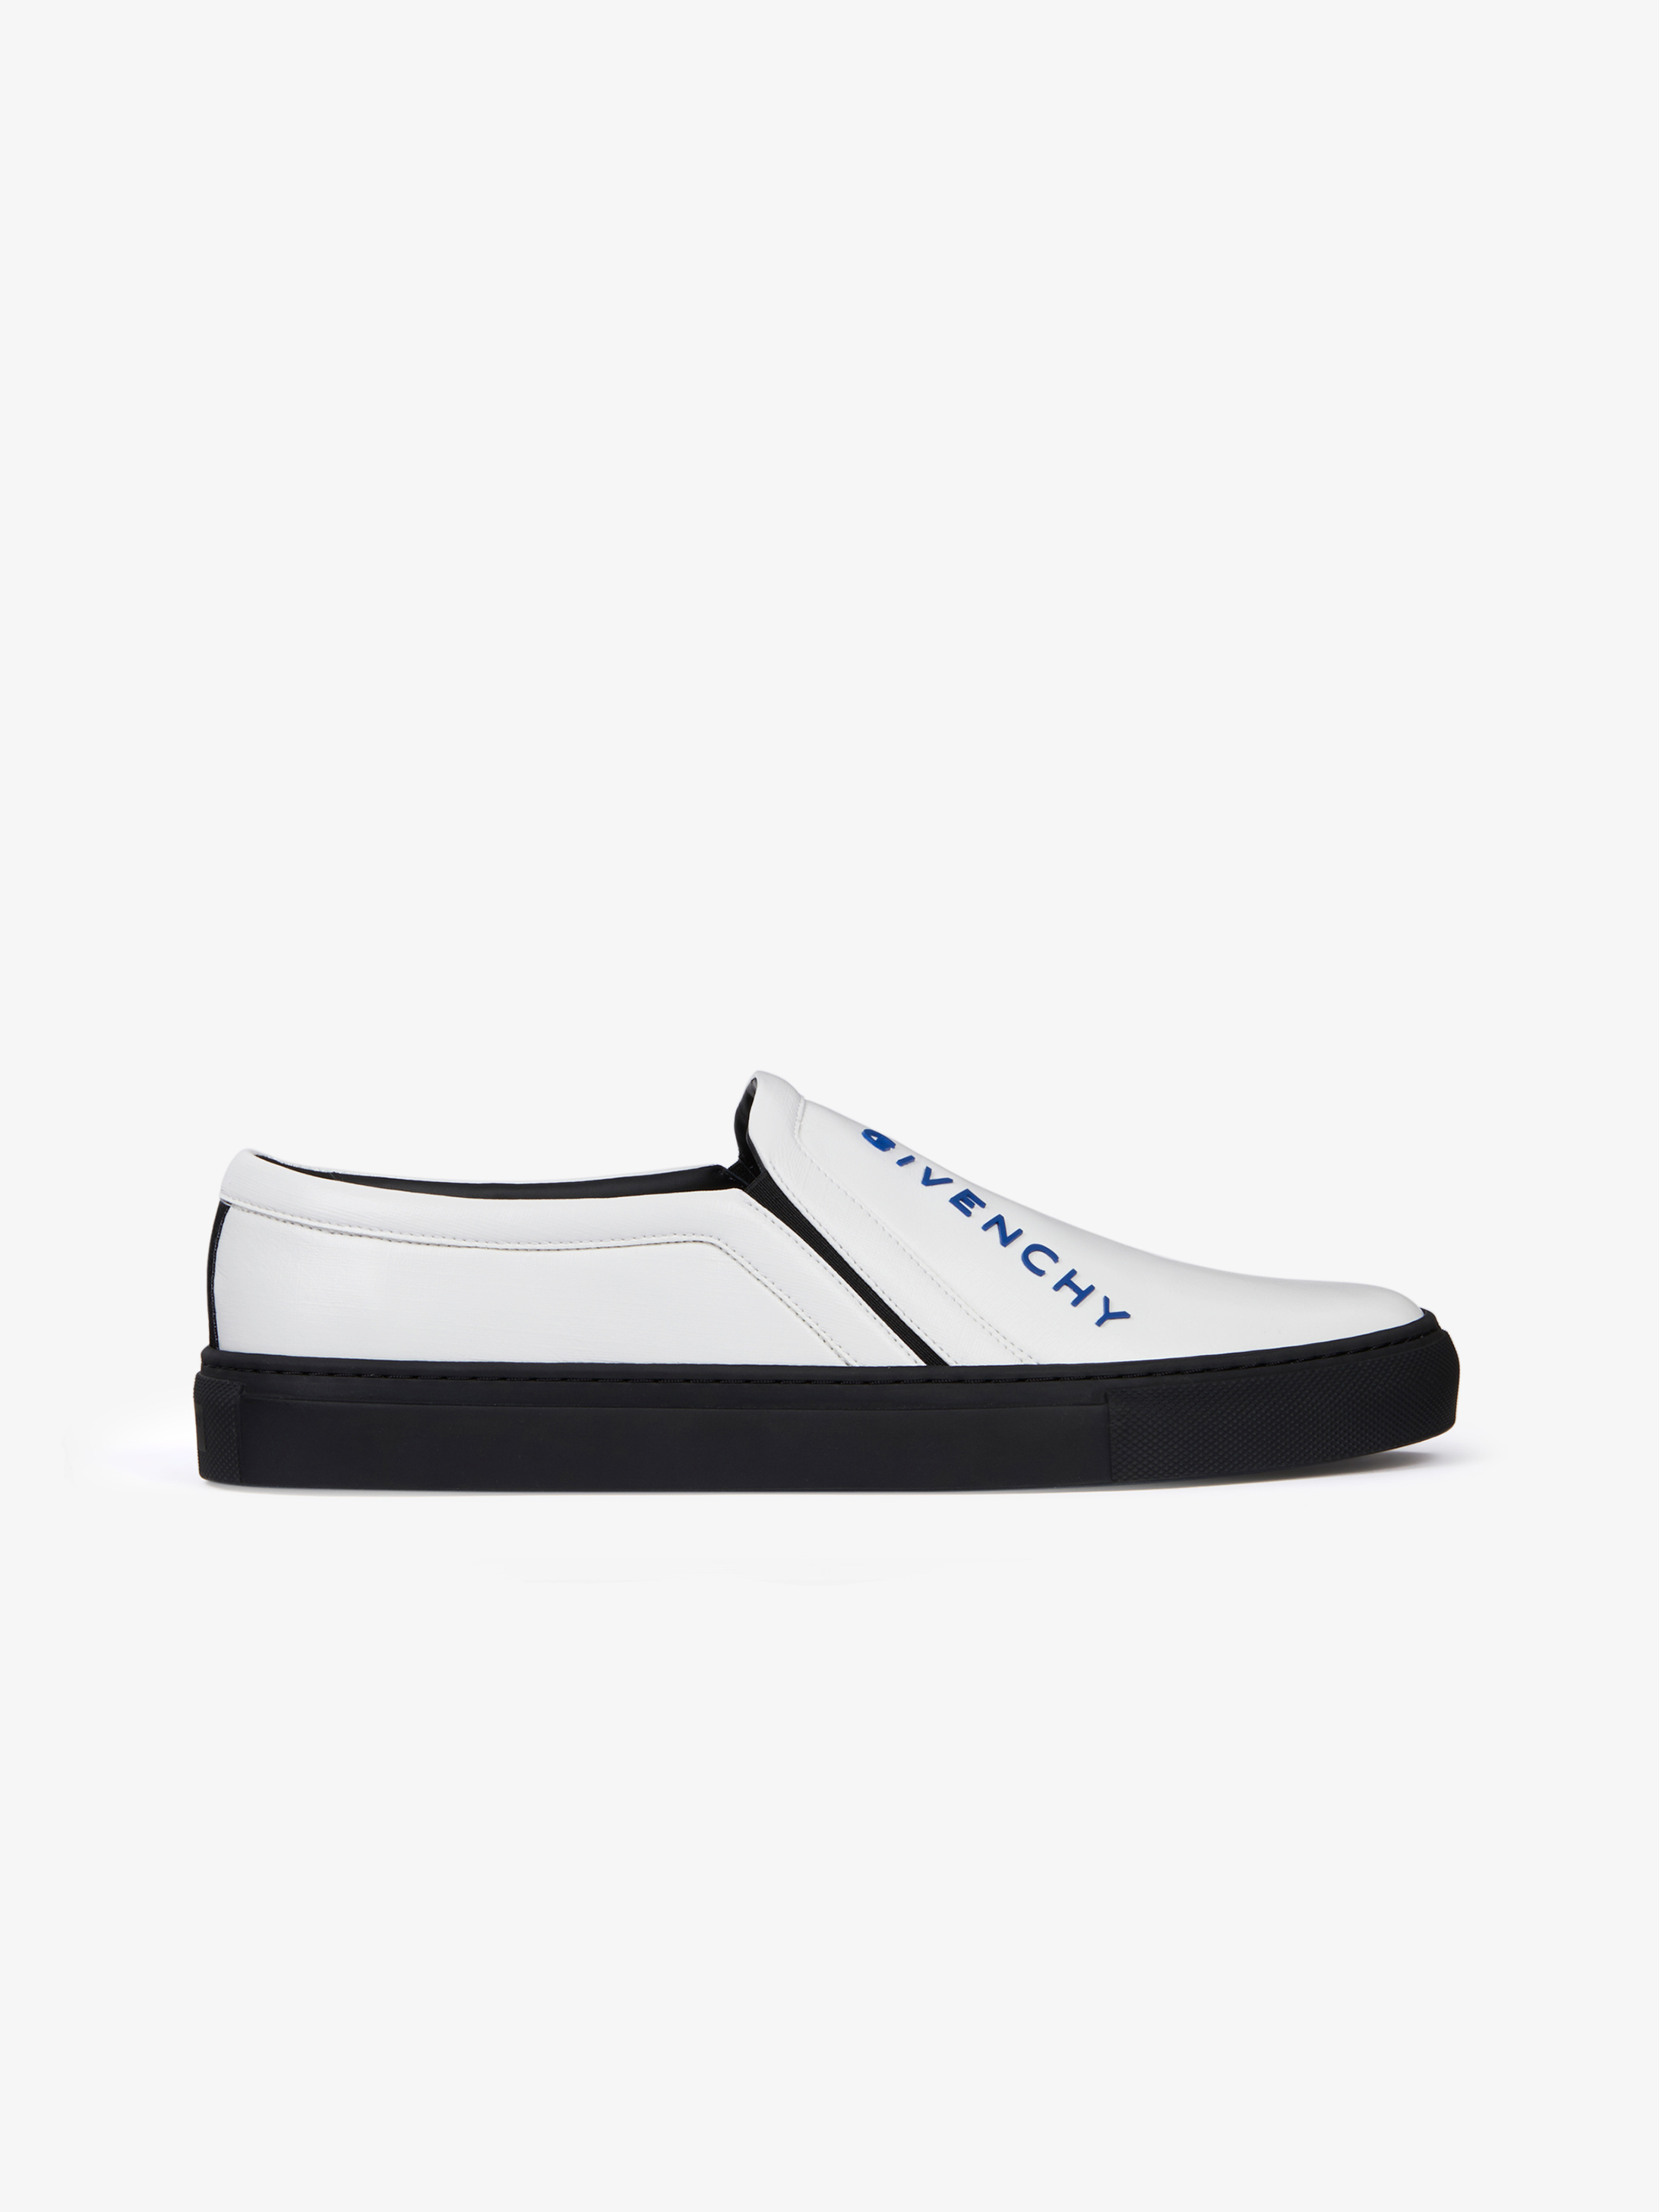 GIVENCHY slip-on in coated canvas